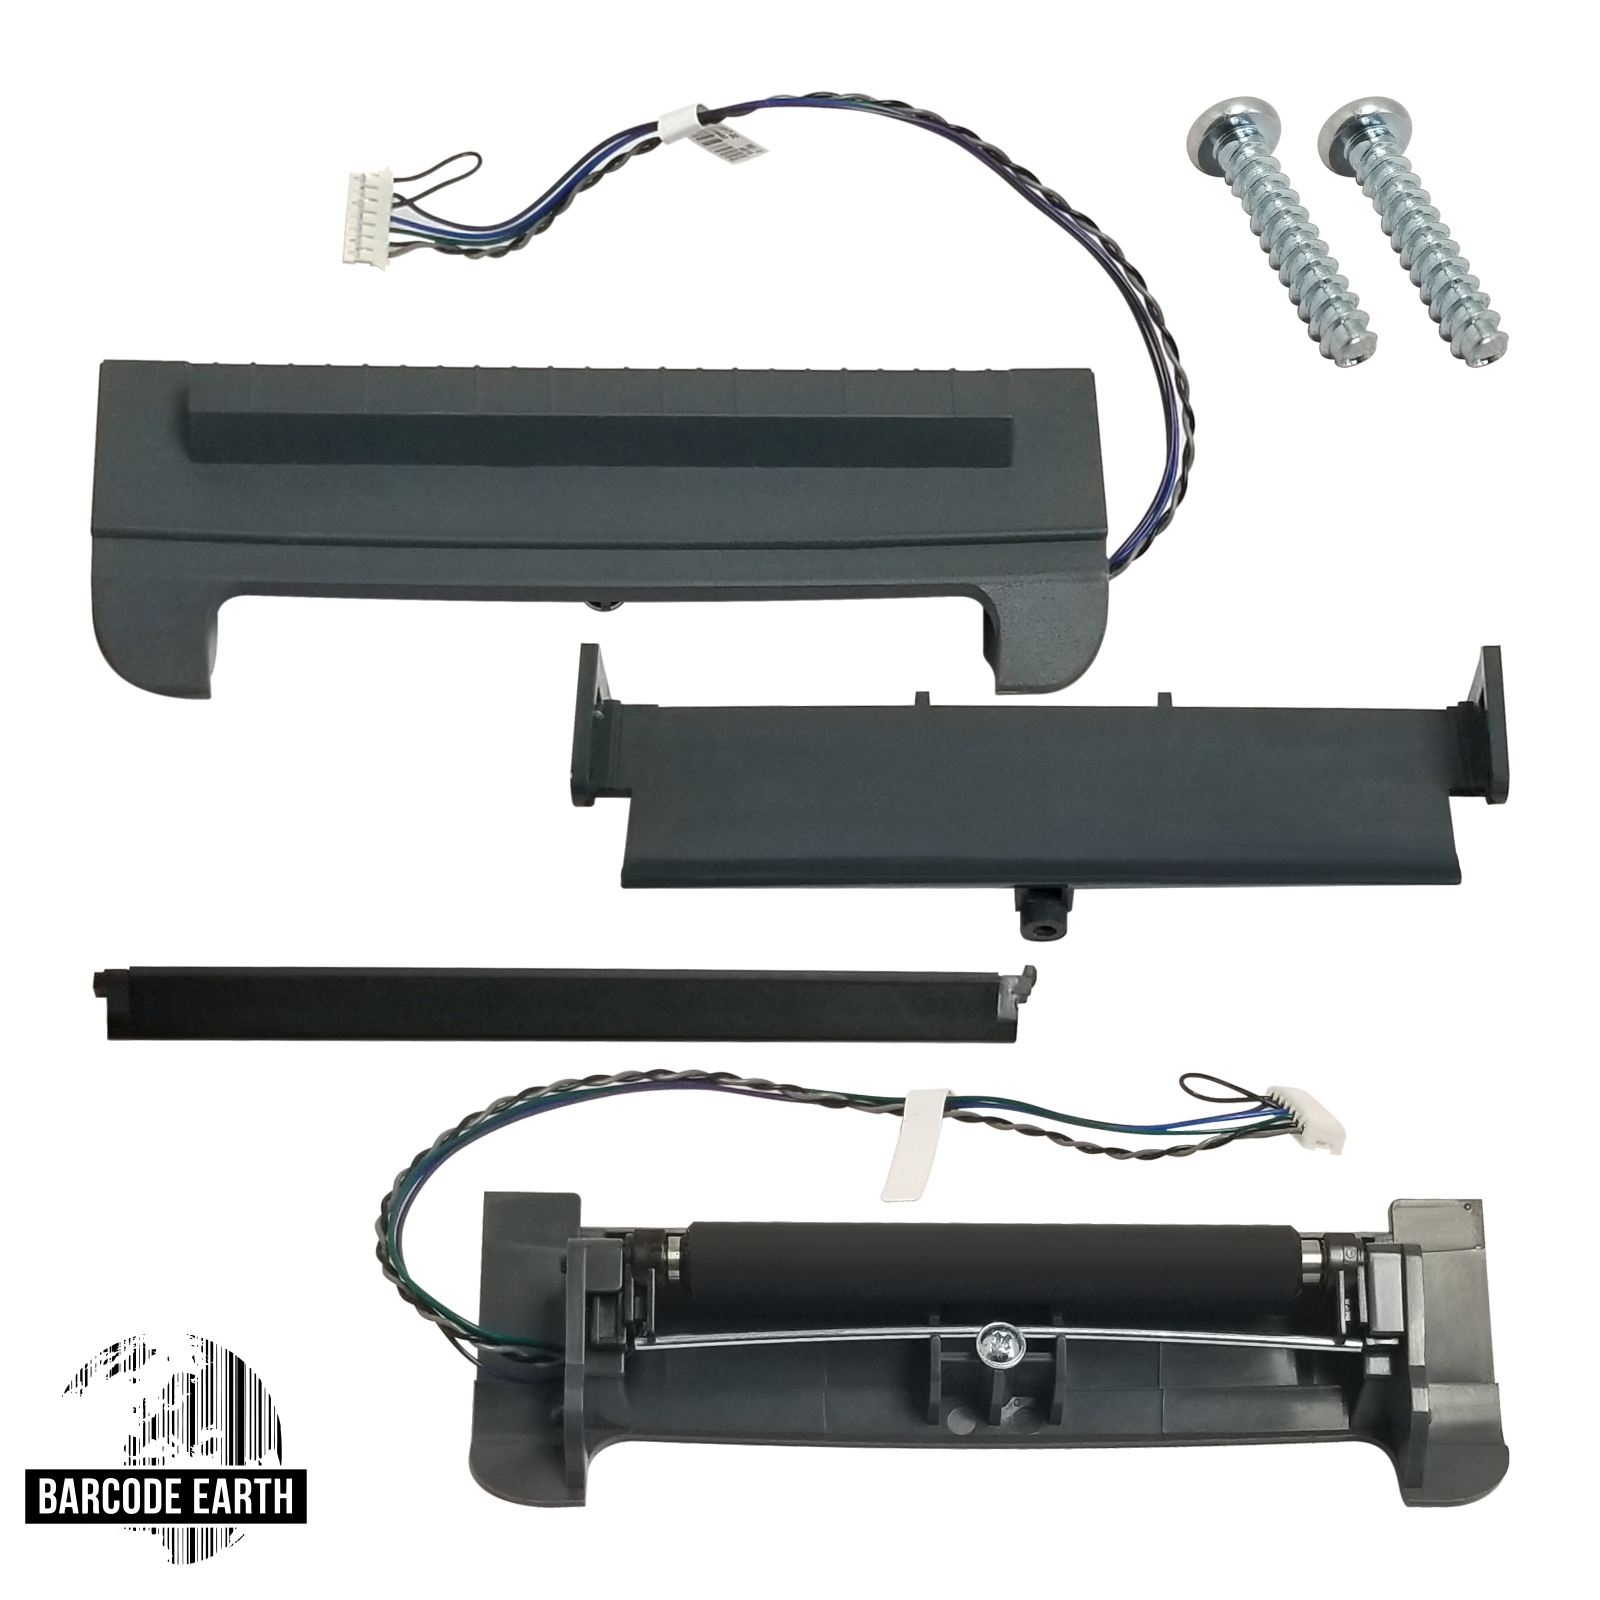 Latch Assembly Hook Replacement For Zebra GK420T GX420T GX430T Thermal Printer